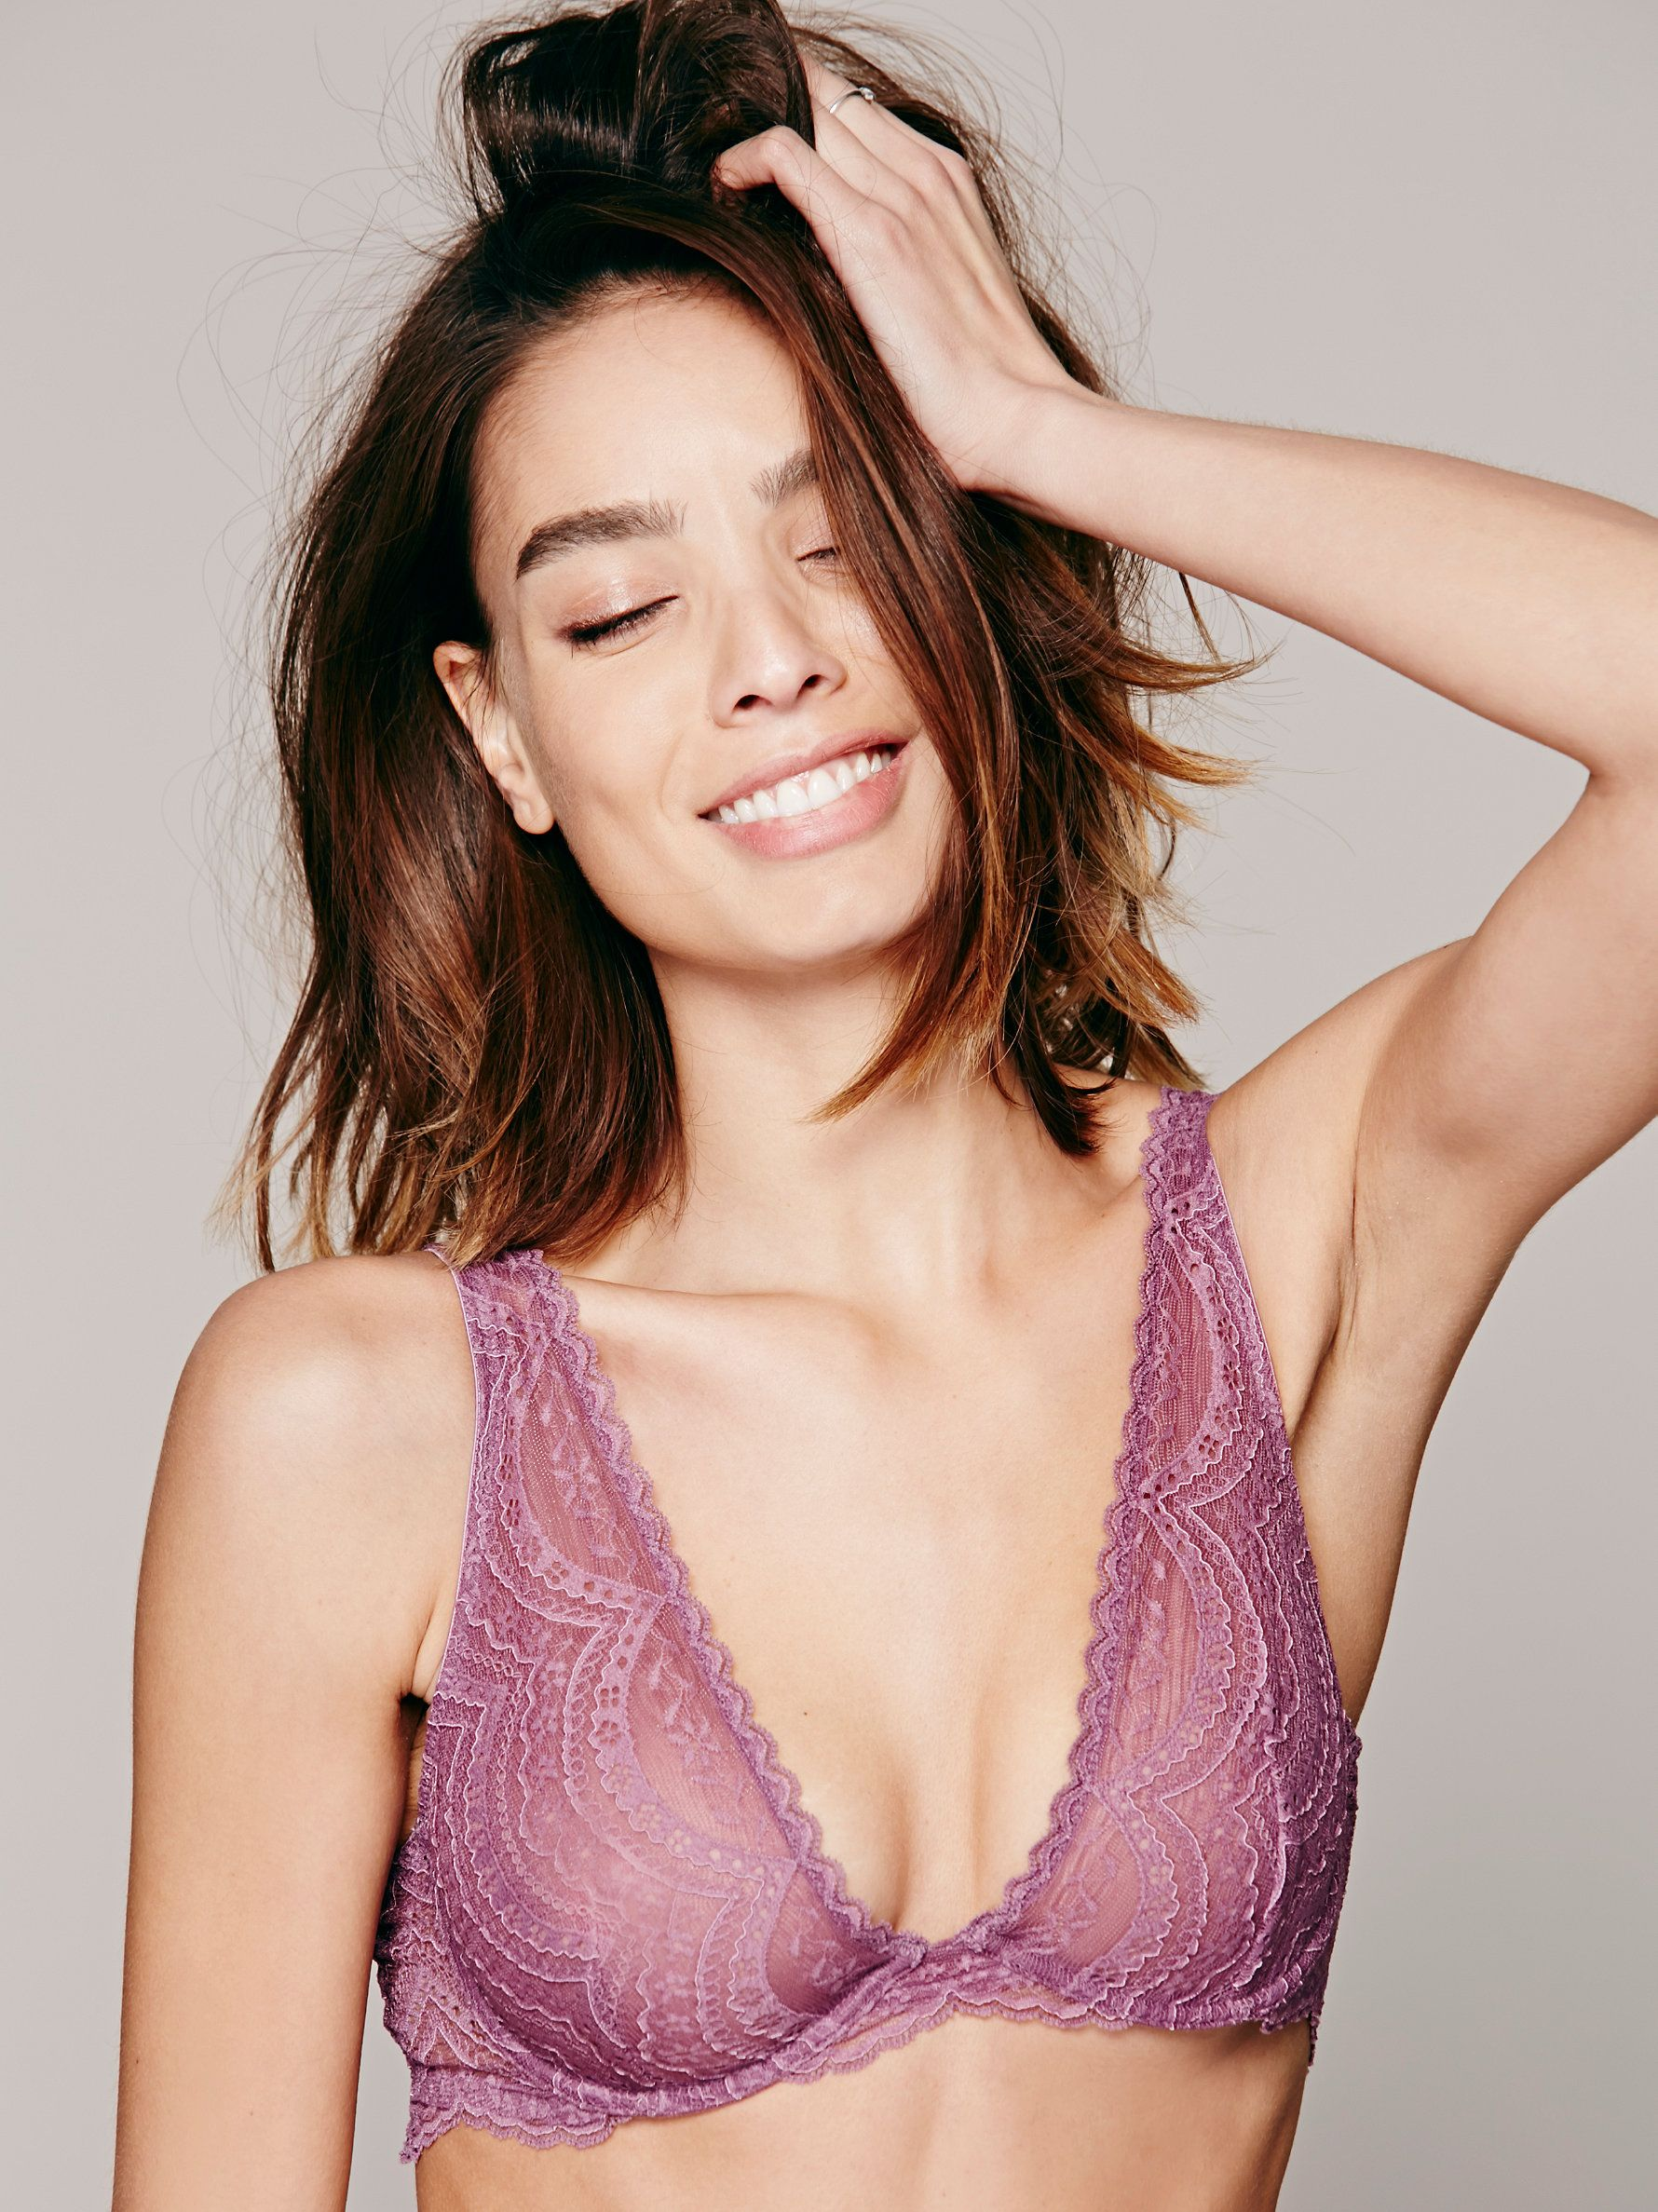 bd7c18e0d5db9 Pin by Janay Kelly on Free People